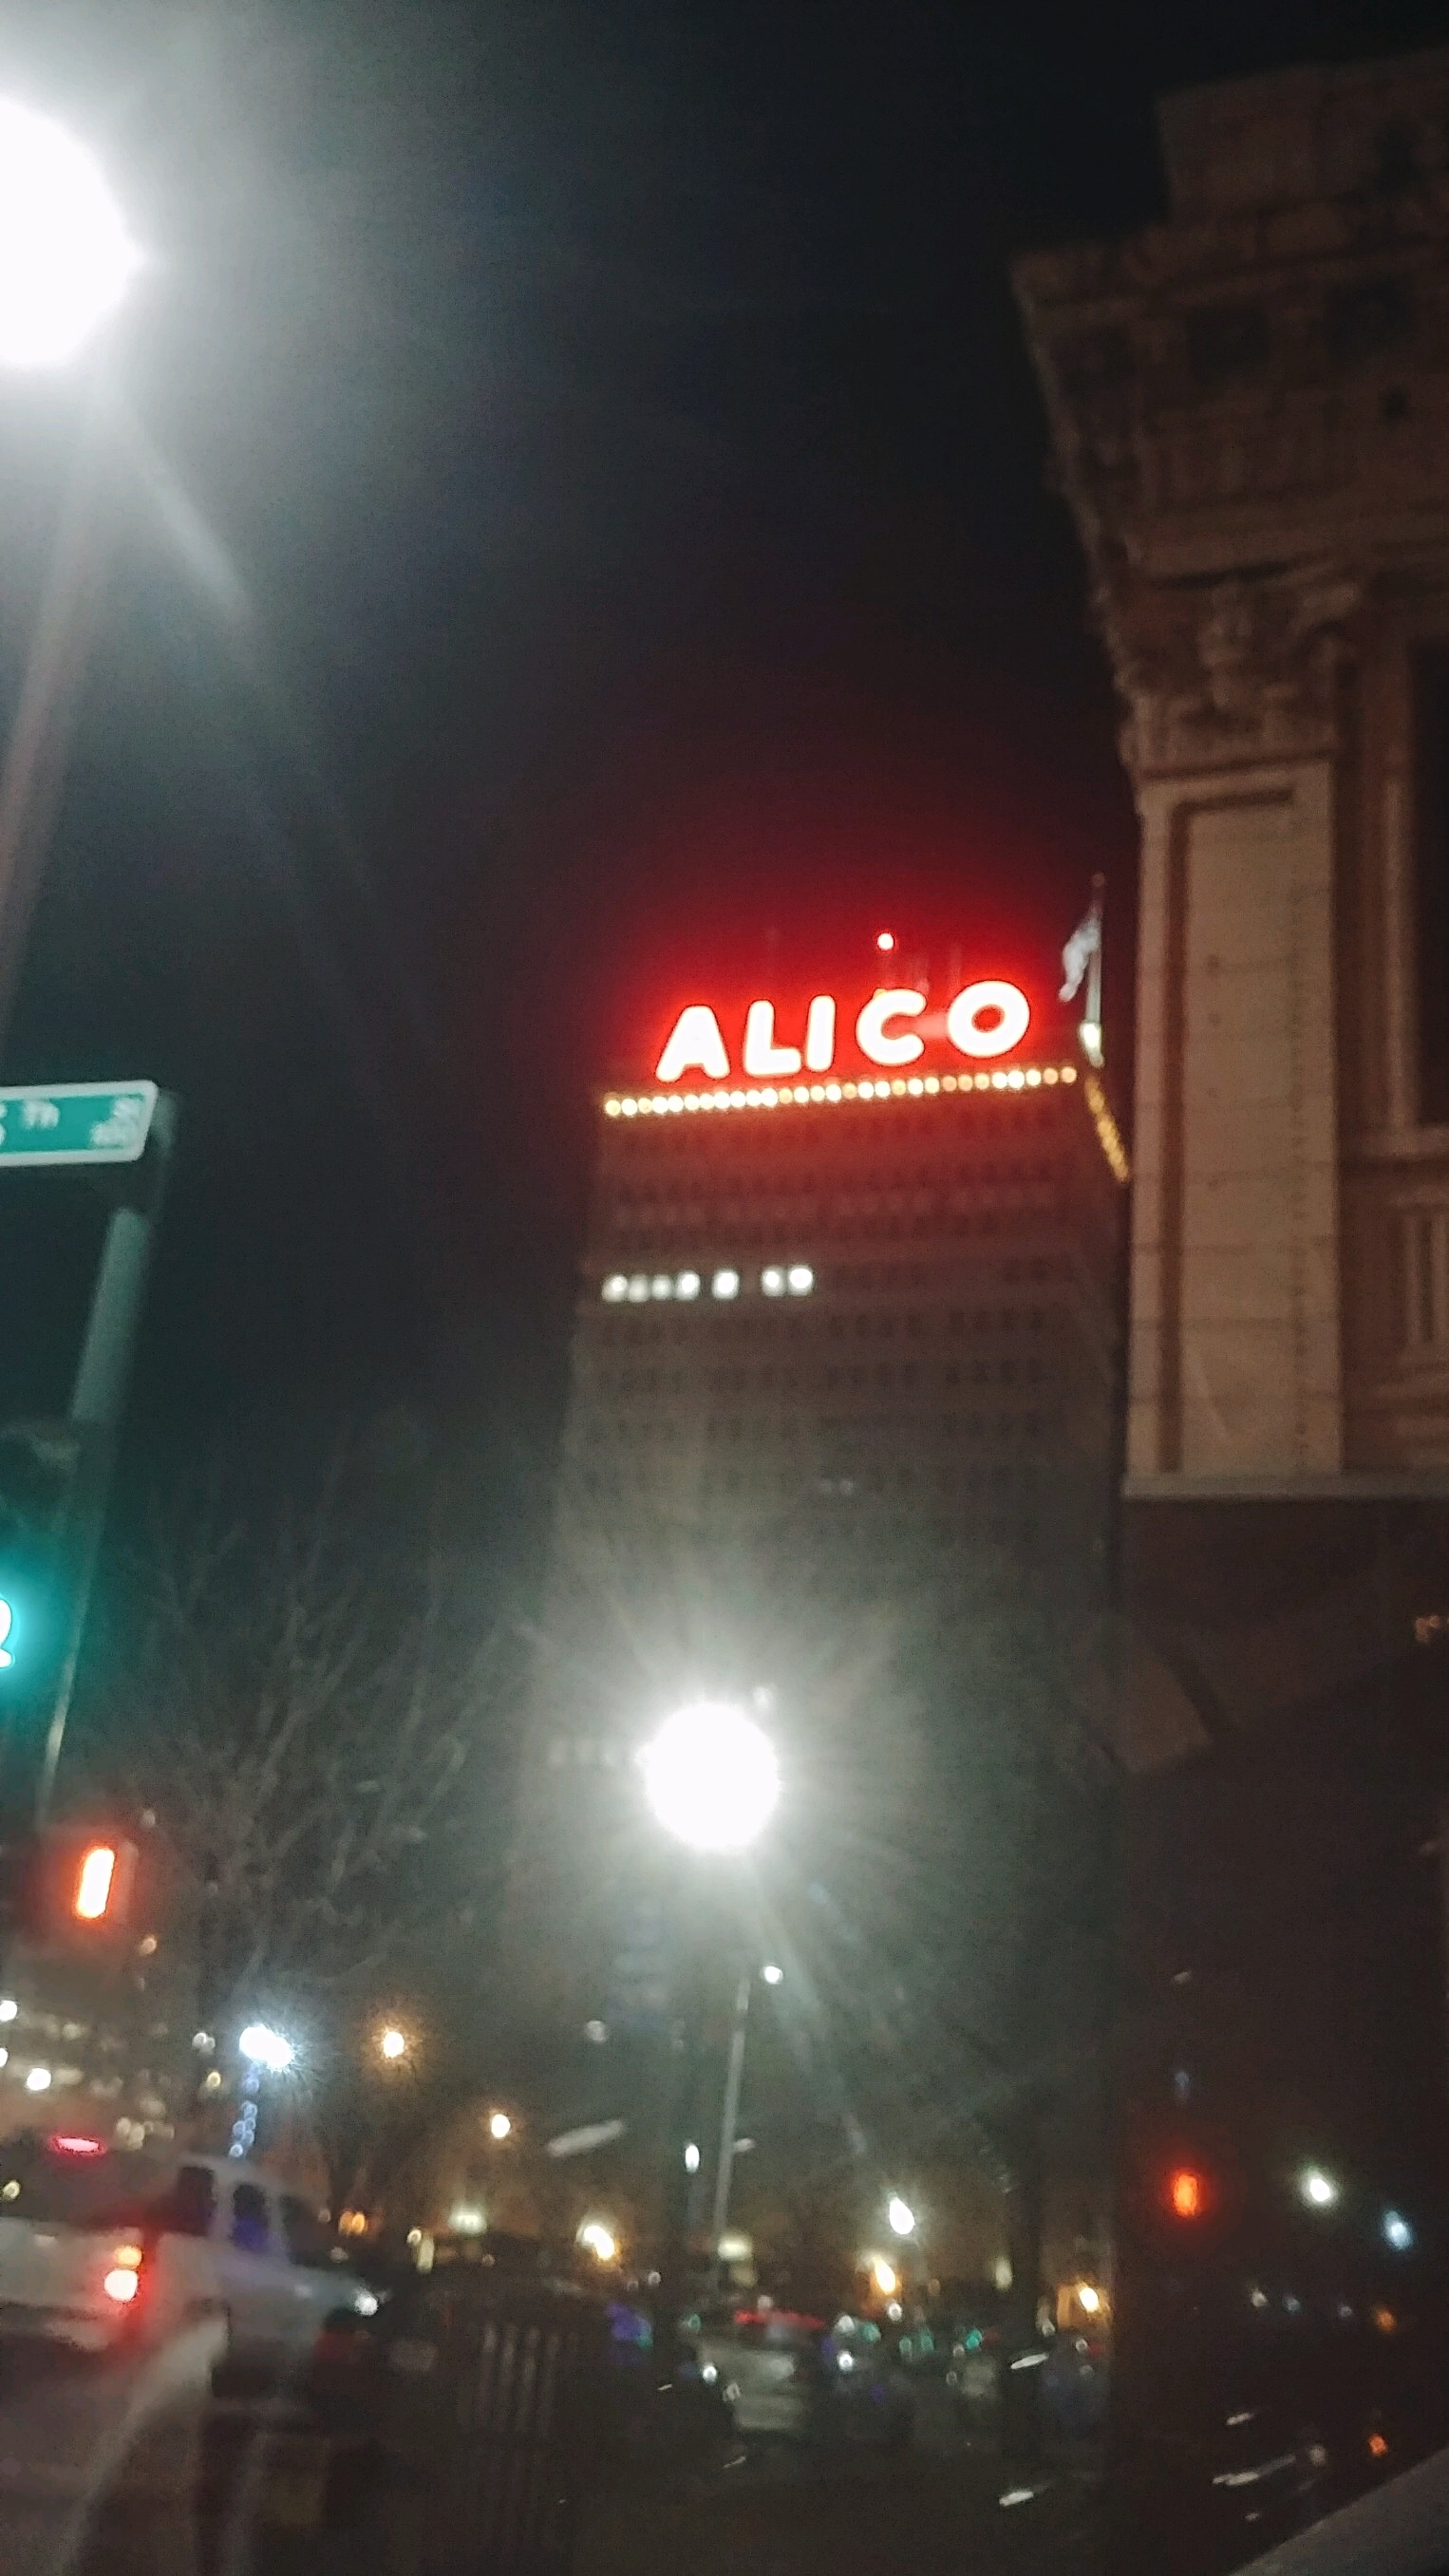 Front side of the ALICO Building with its glowing red letters